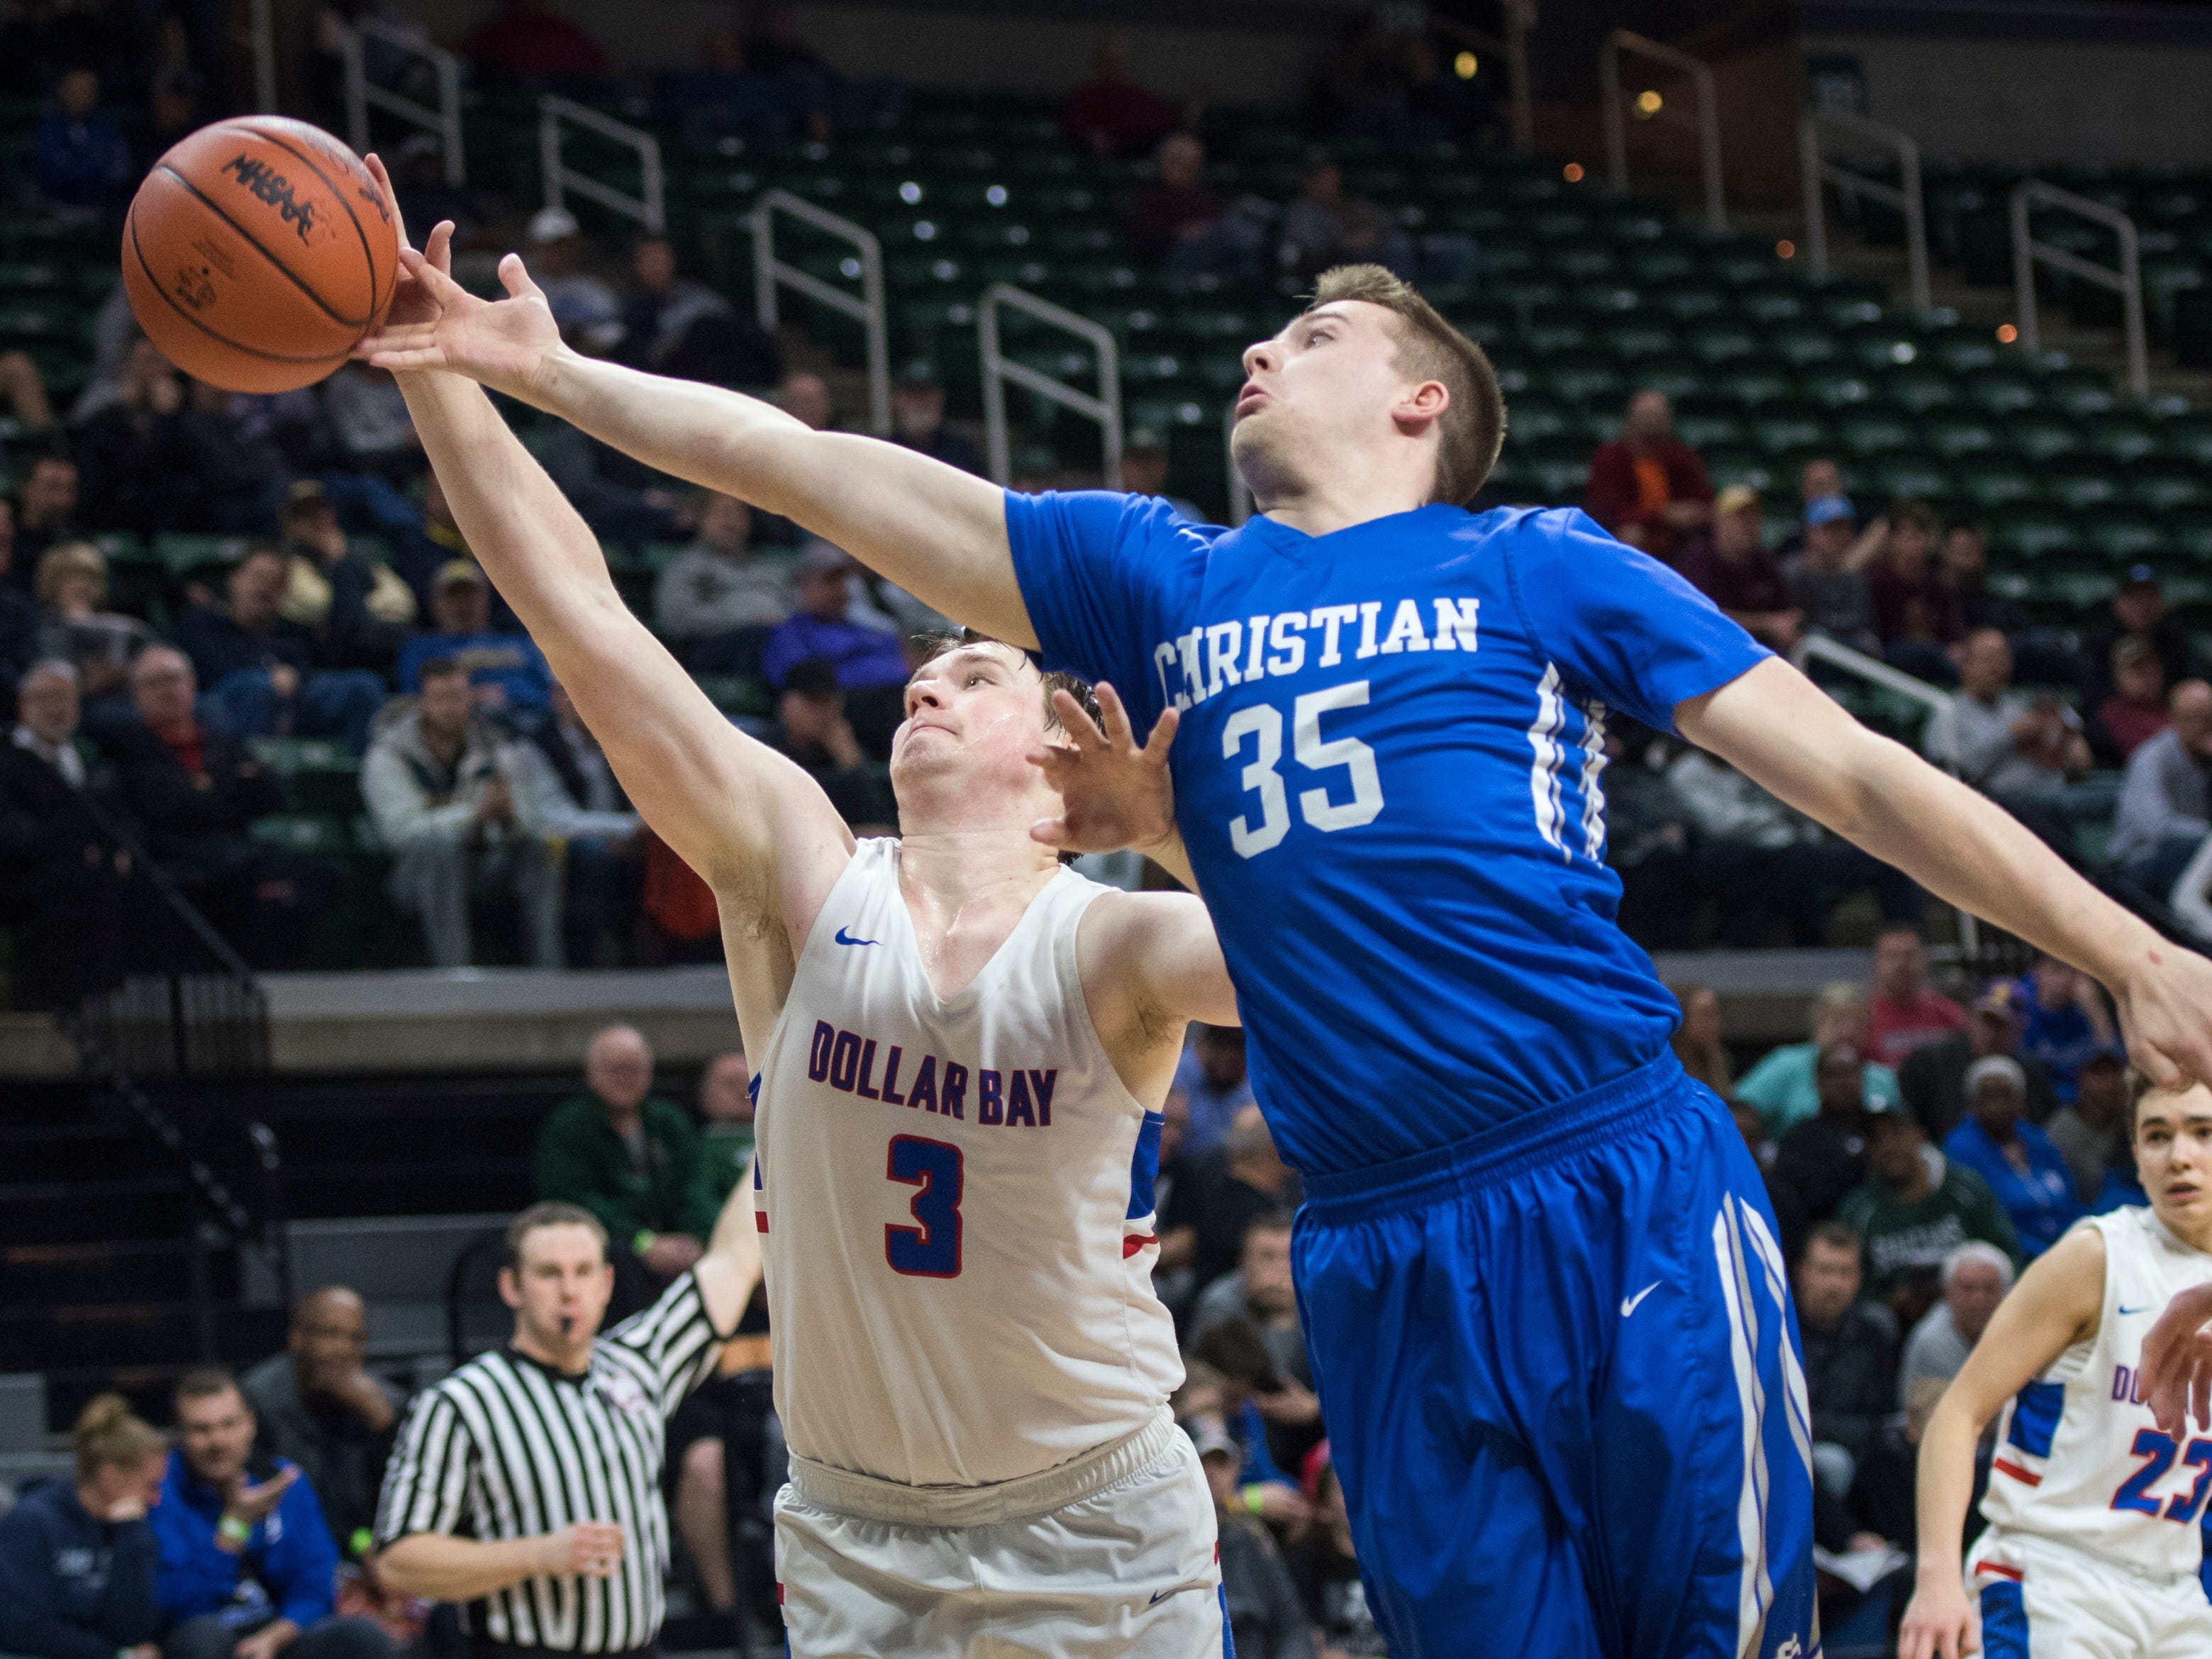 Dollar Bay's Drake Schmitz and Southfield Christian's Will Harahan reach for a loose ball in the second half. '